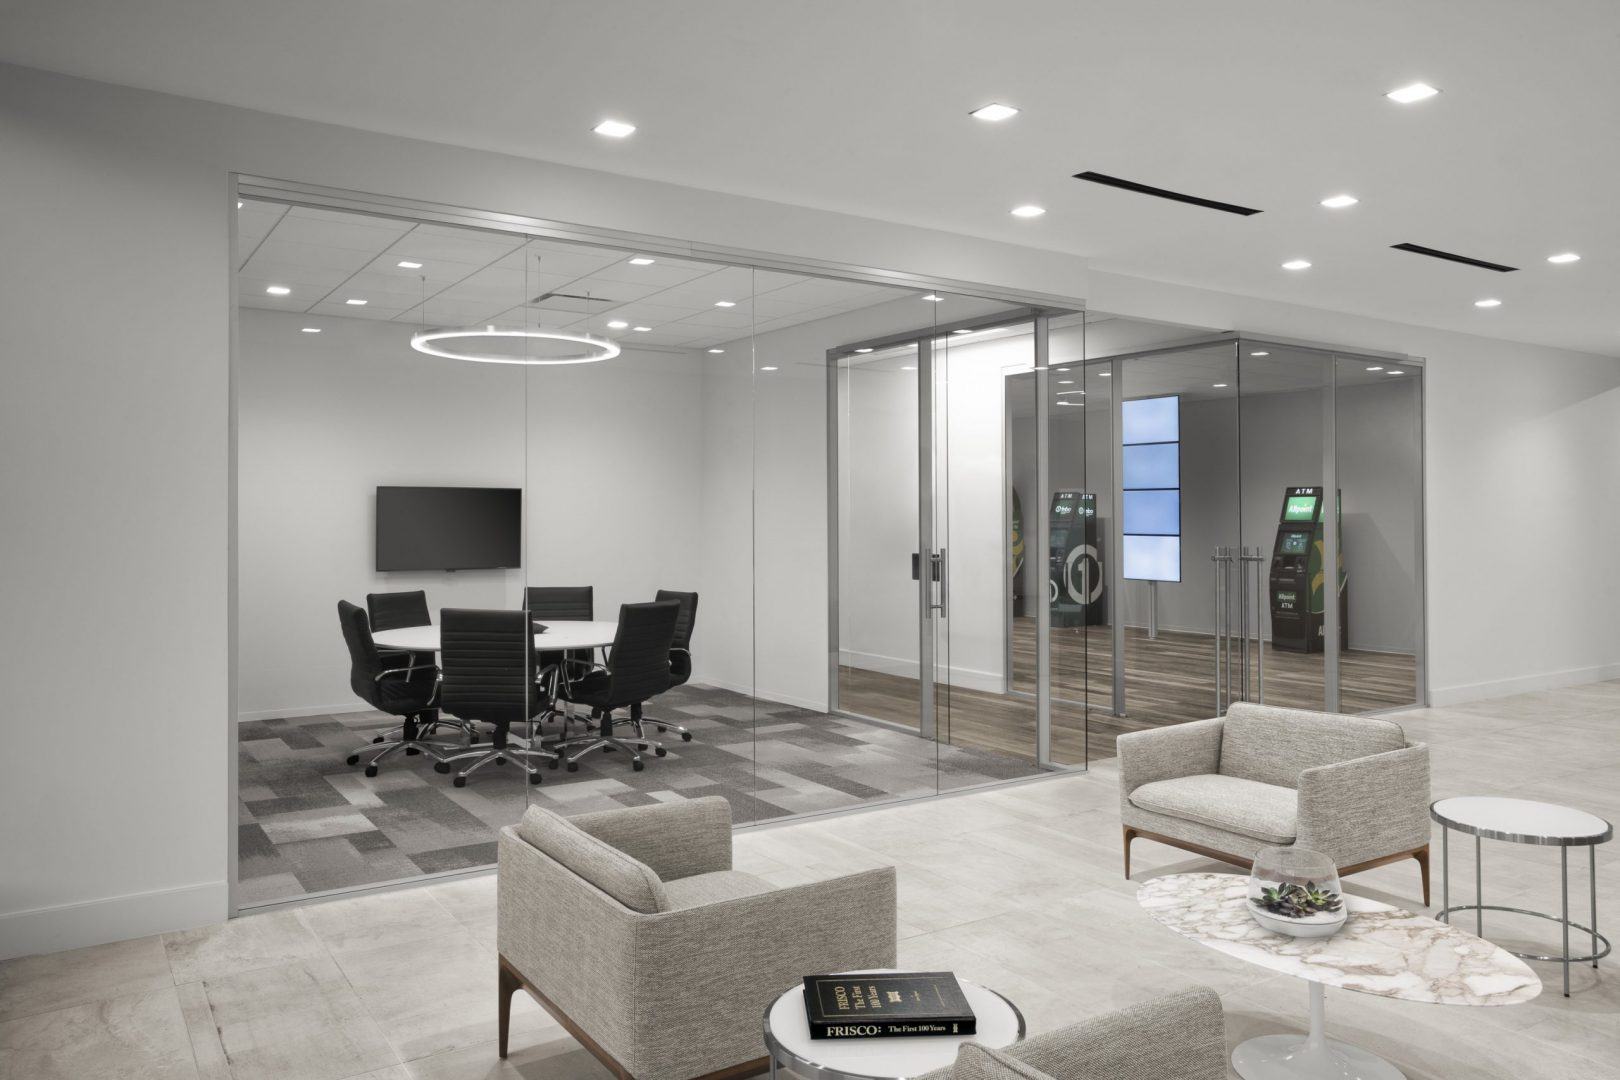 Corporate Financial Interior Design Cardtronics Lobby and Small Meeting Room